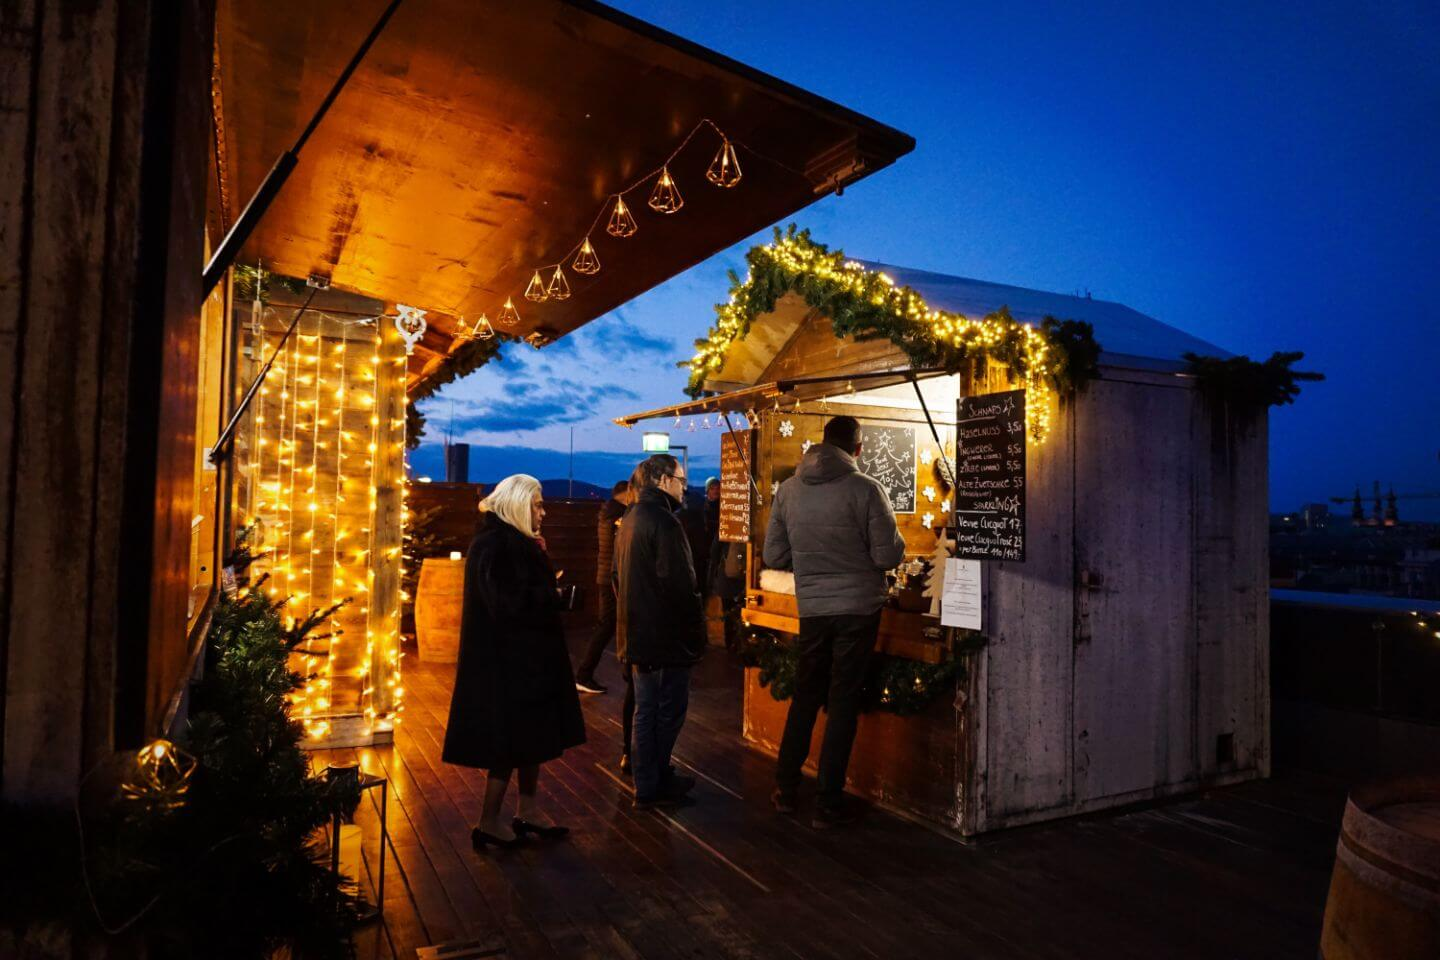 Ritz-Carlton Rooftop Christmas Market - Top things to do in Vienna in December, Winter Travel